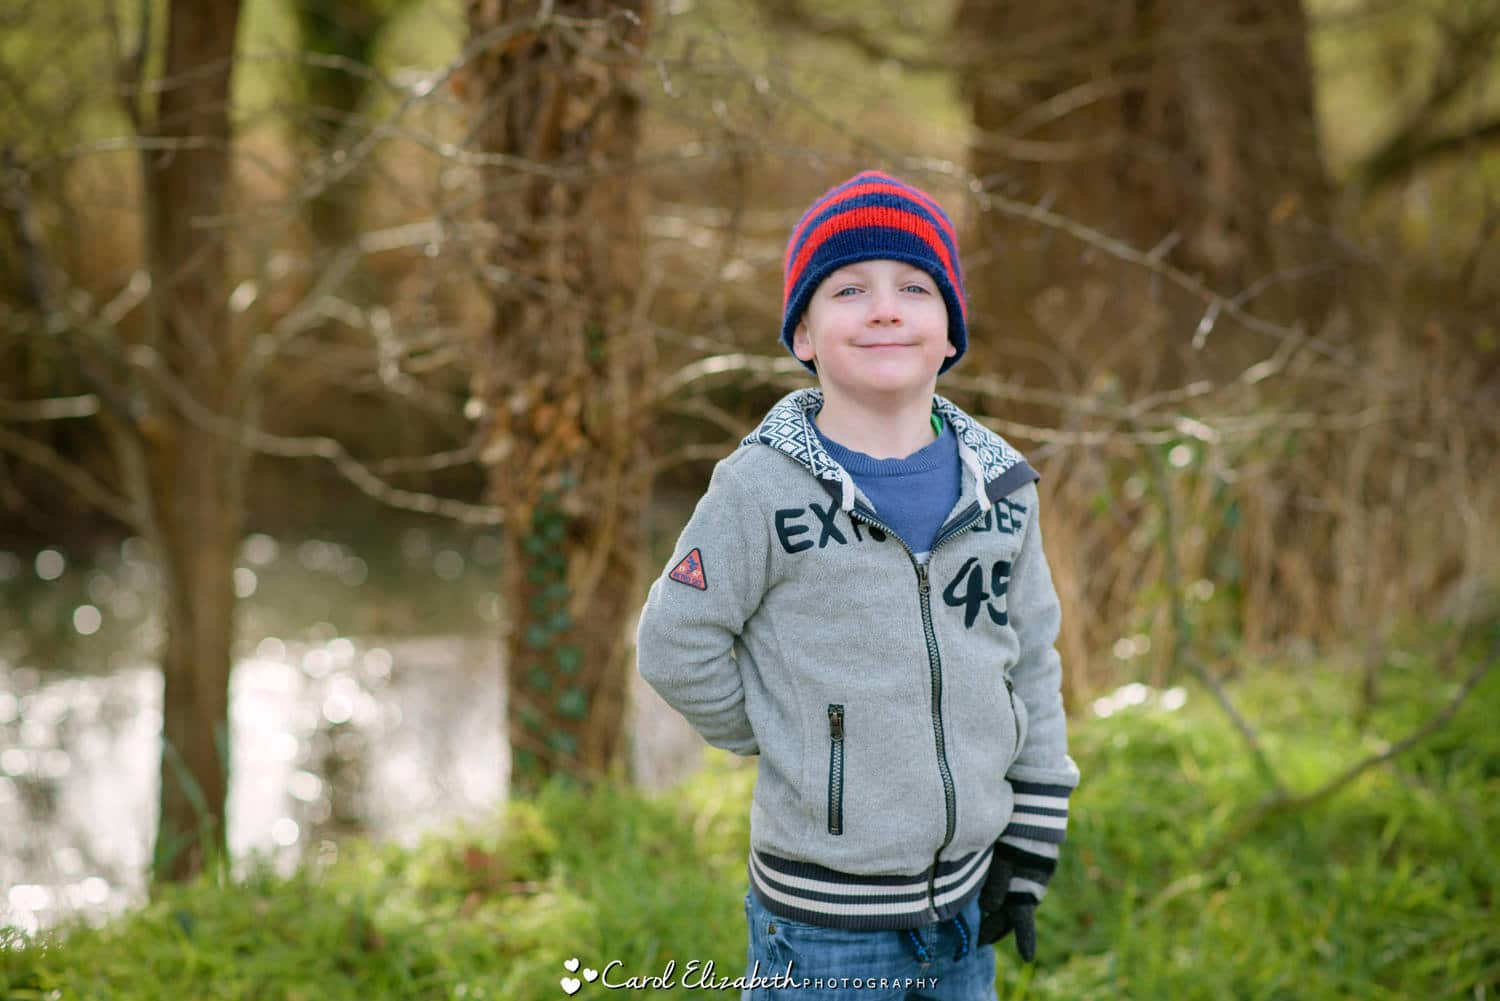 Oxfordshire outdoor photography